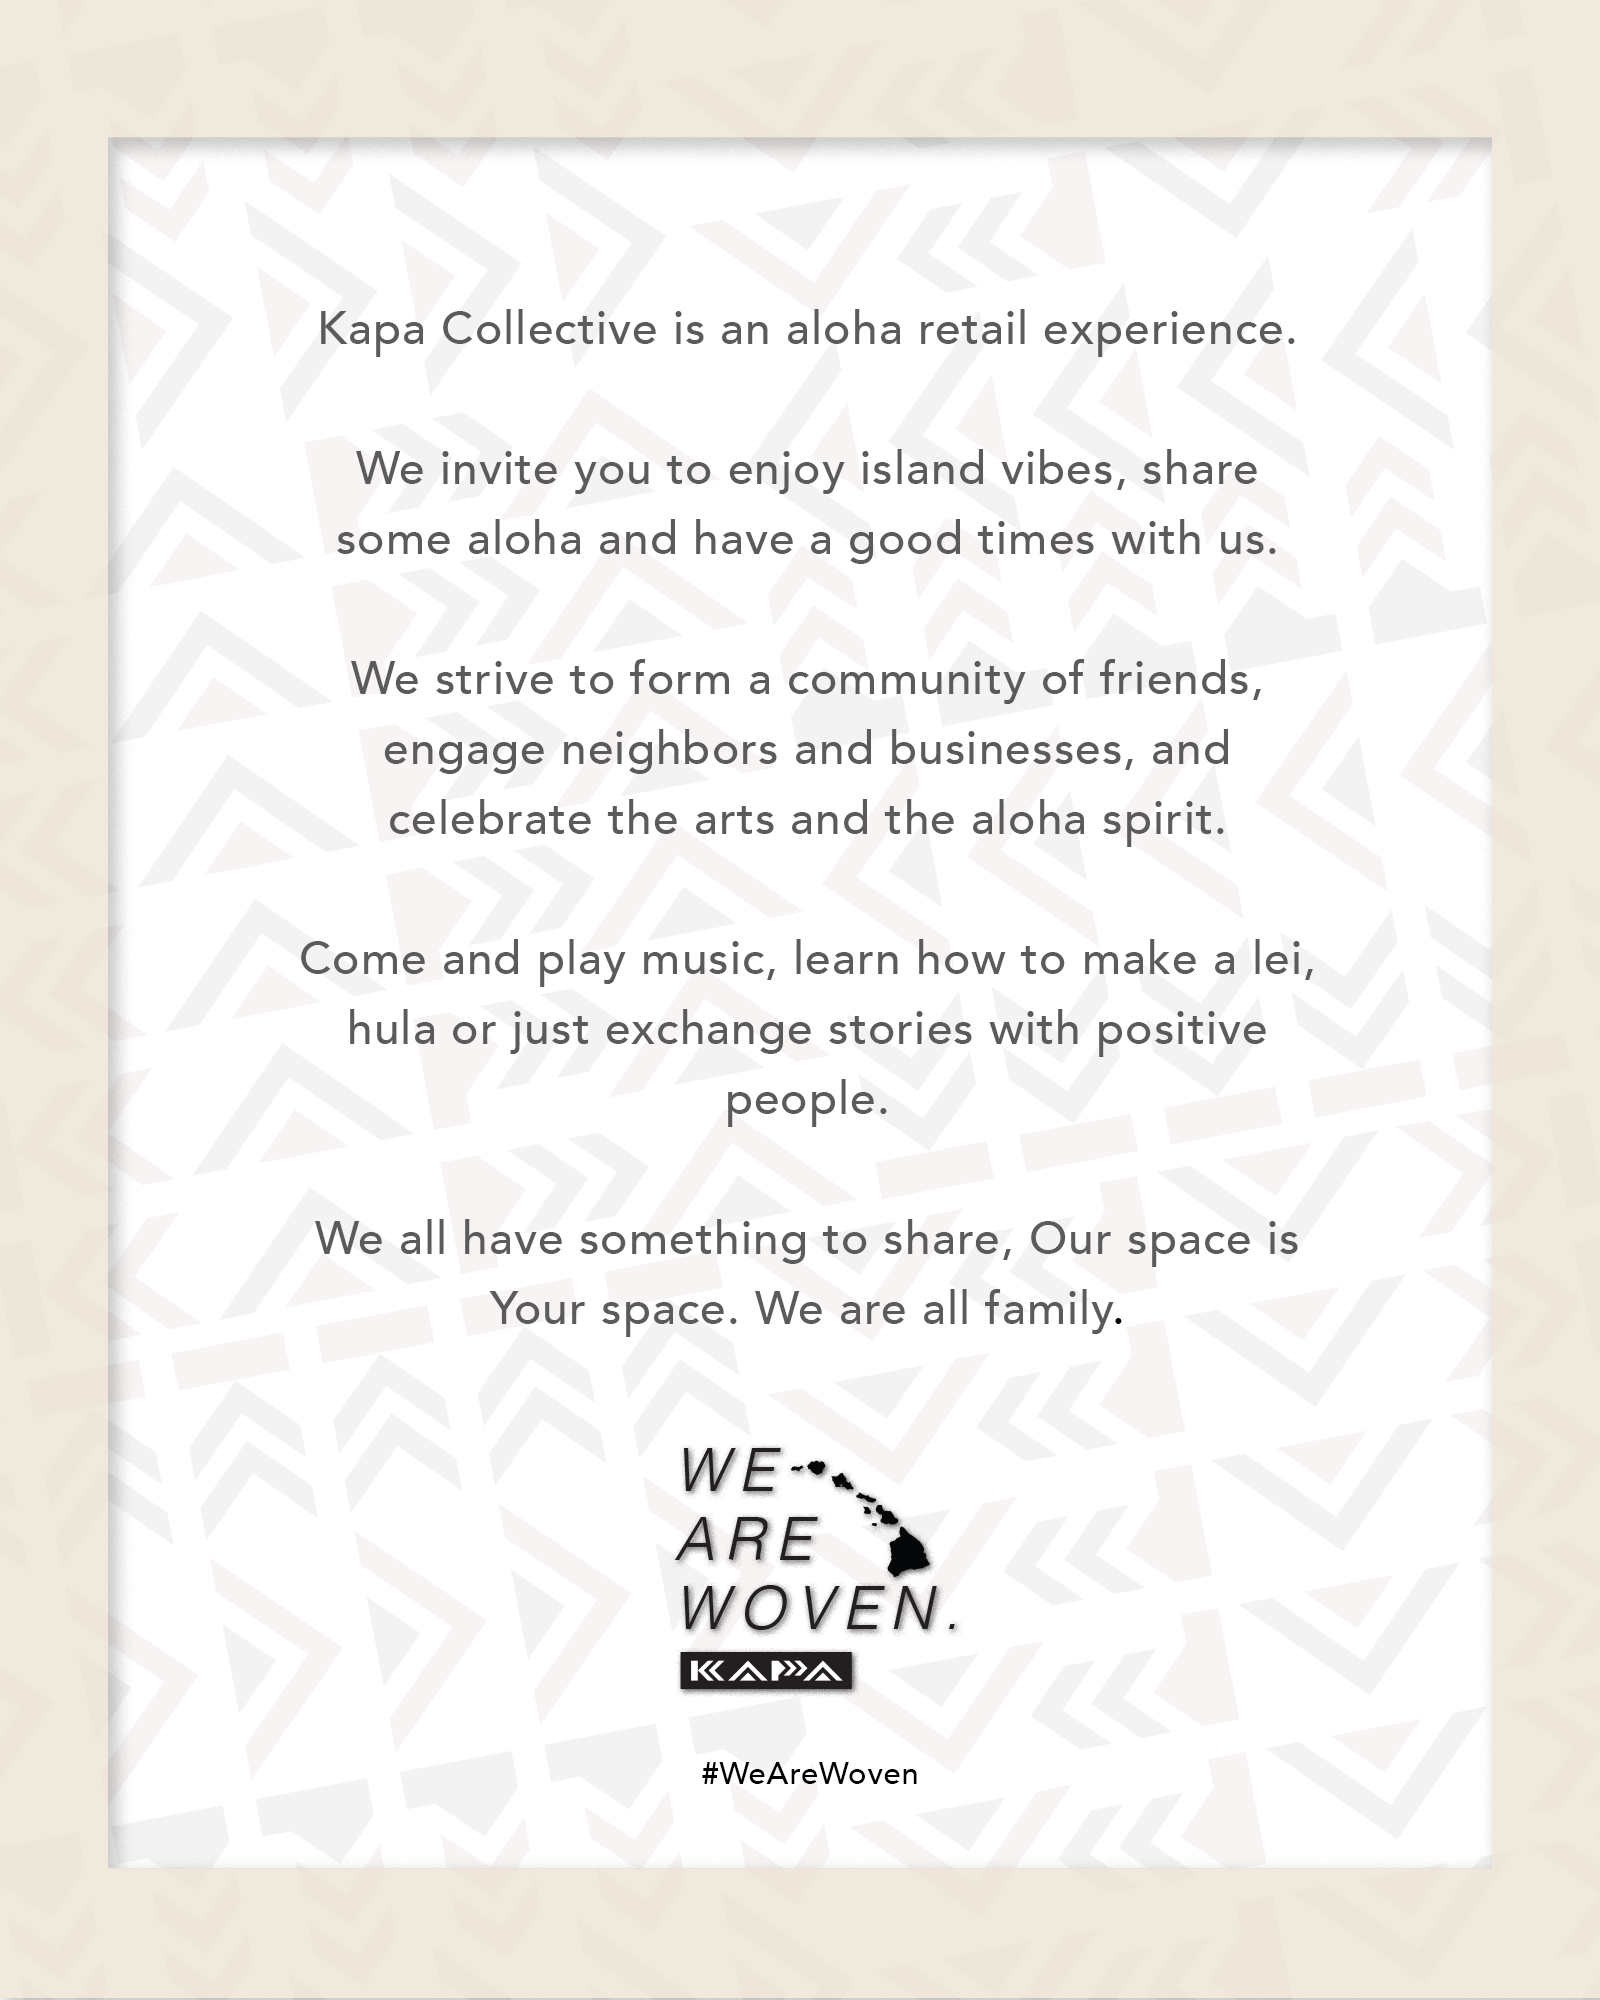 About Kapa Collective